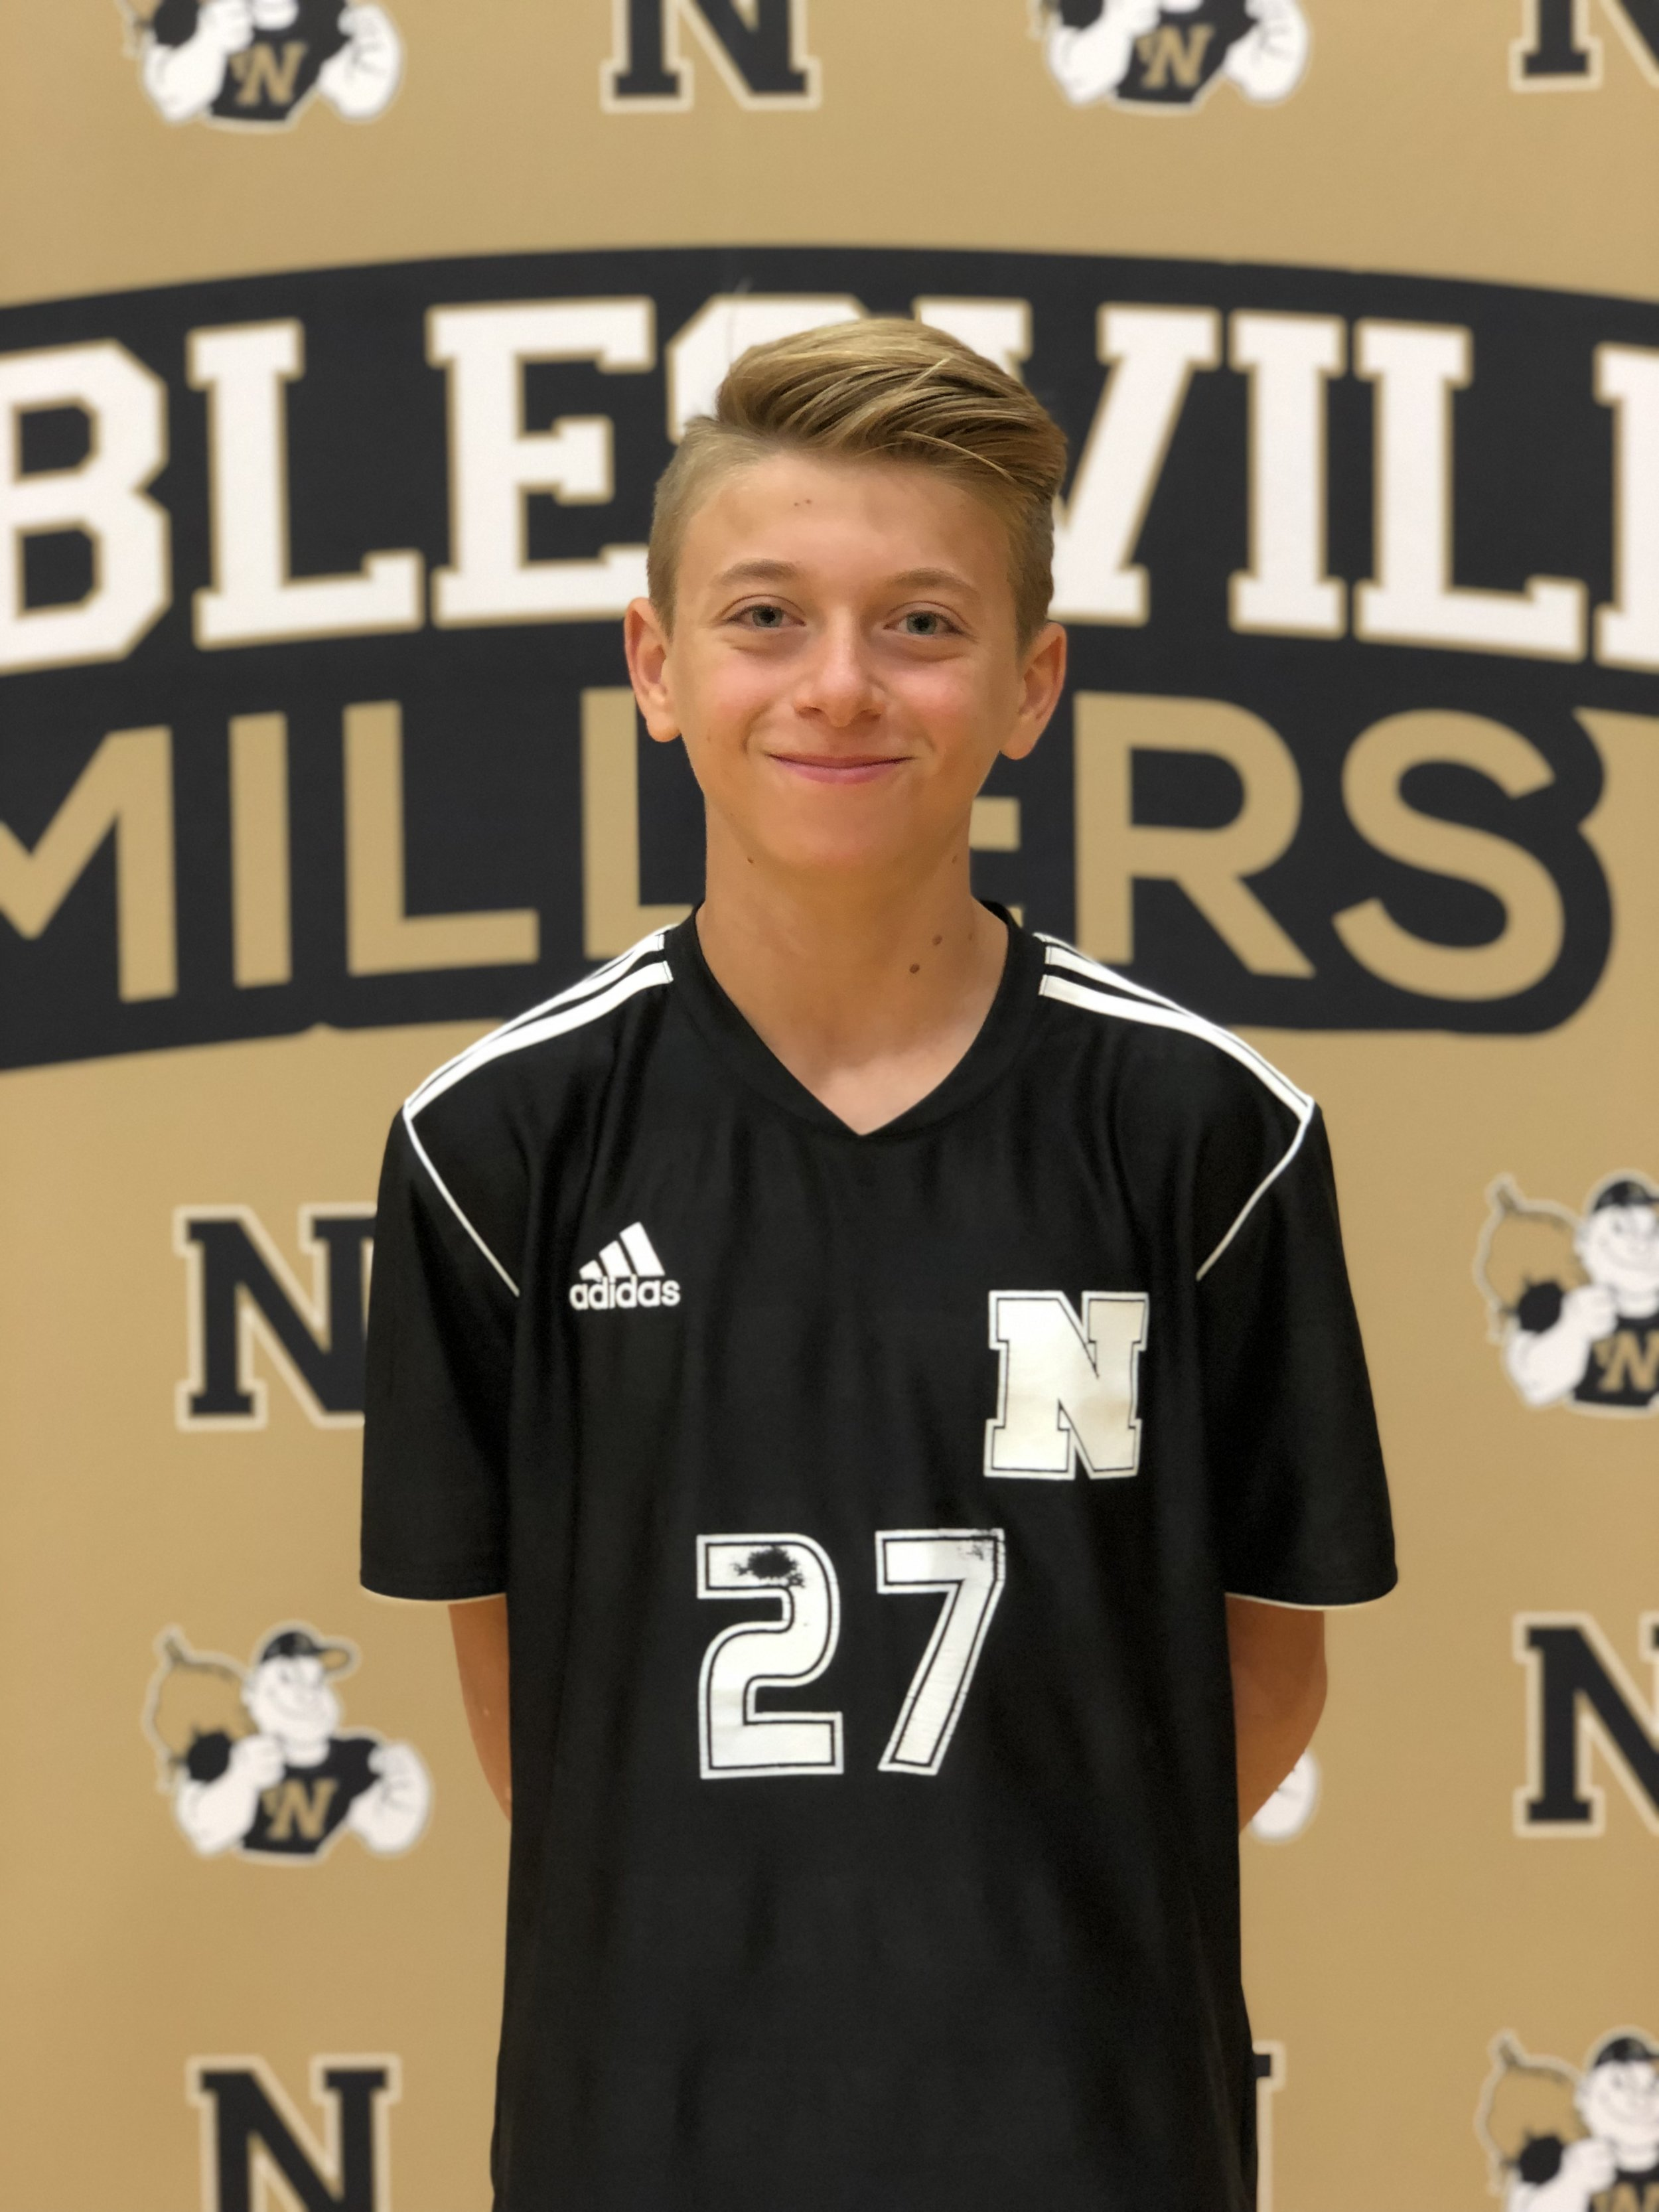 #27 Dominic Fisher (M) Class of 2023